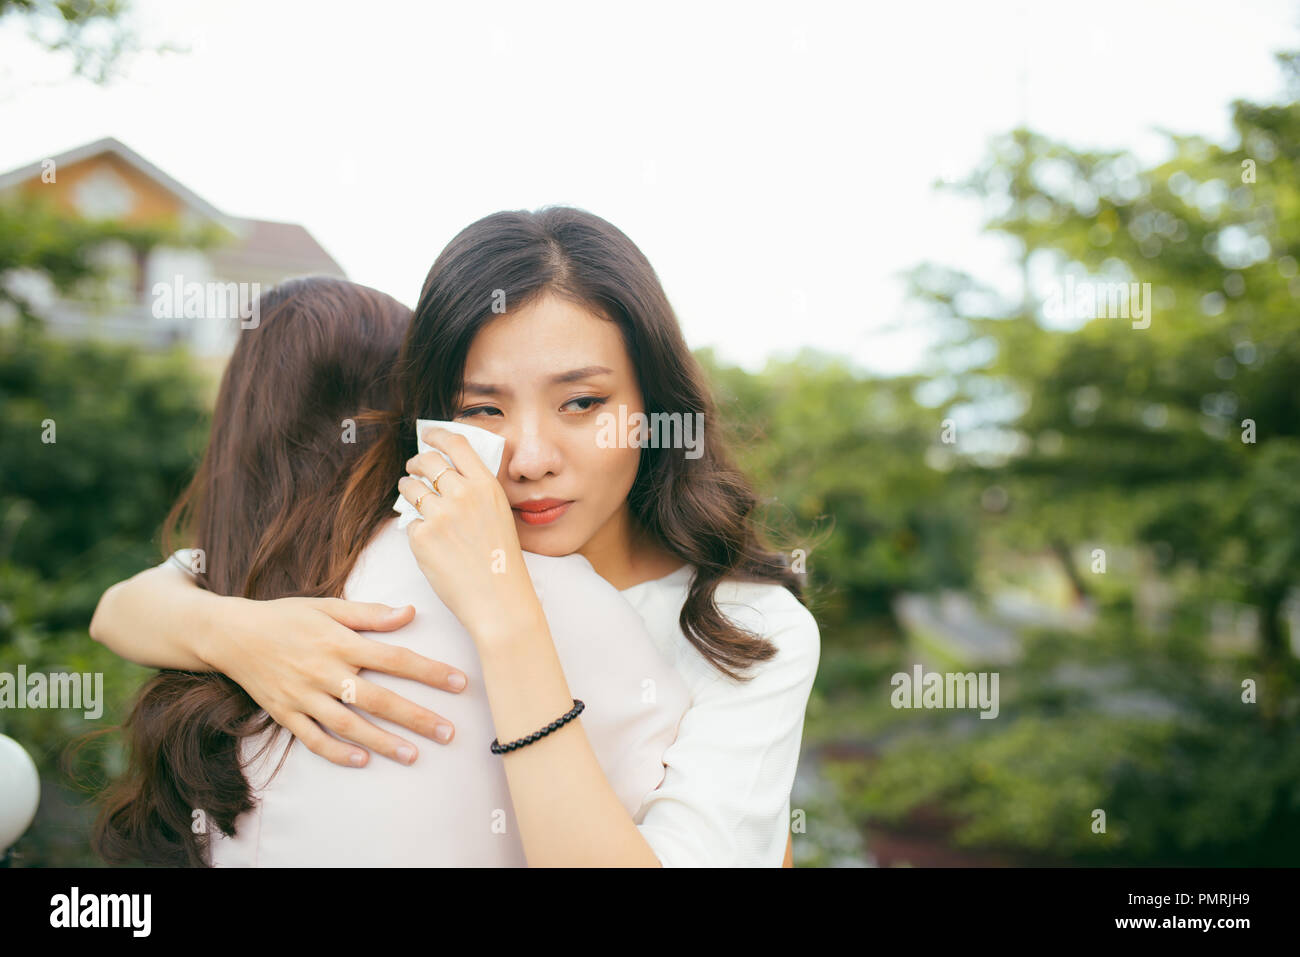 Portrait two women. Sad unhappy young woman being consoled by her friend. Friendship help support and difficult times concept. Human emotions feelings - Stock Image